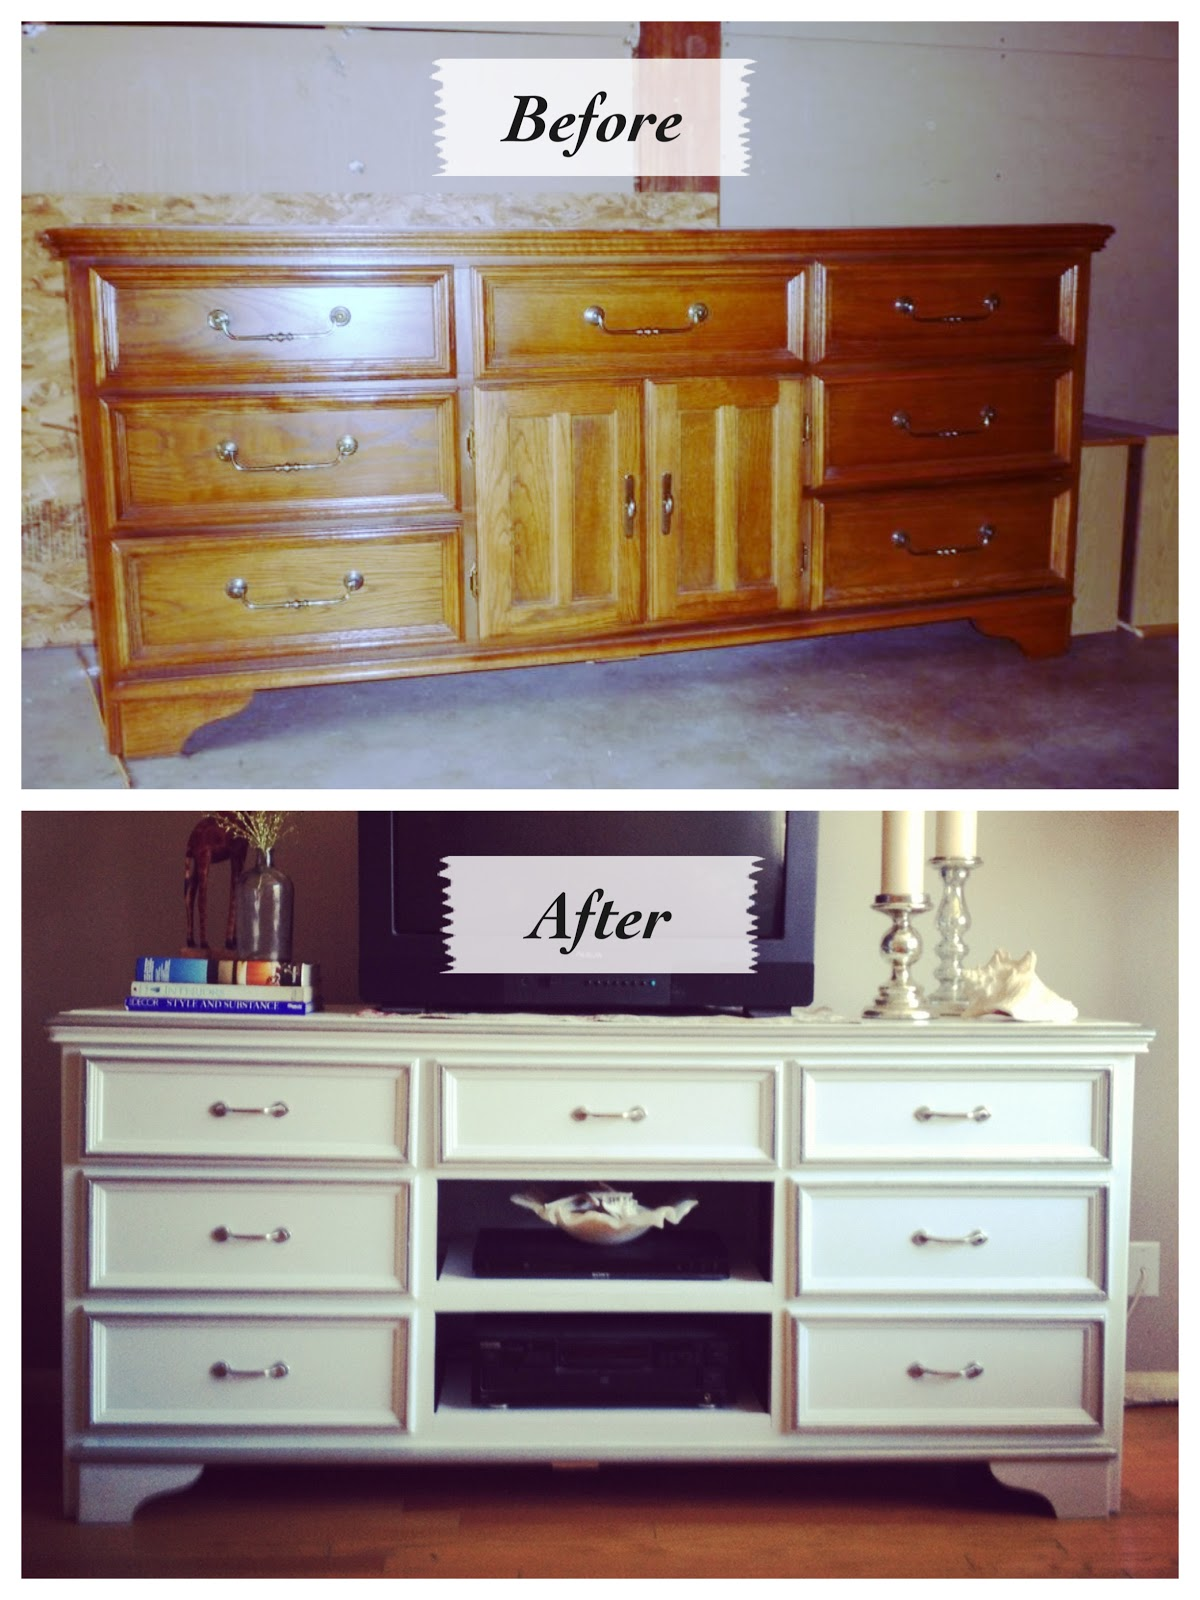 Turned to design going back in time an old dresser redo How to redo your room without spending money